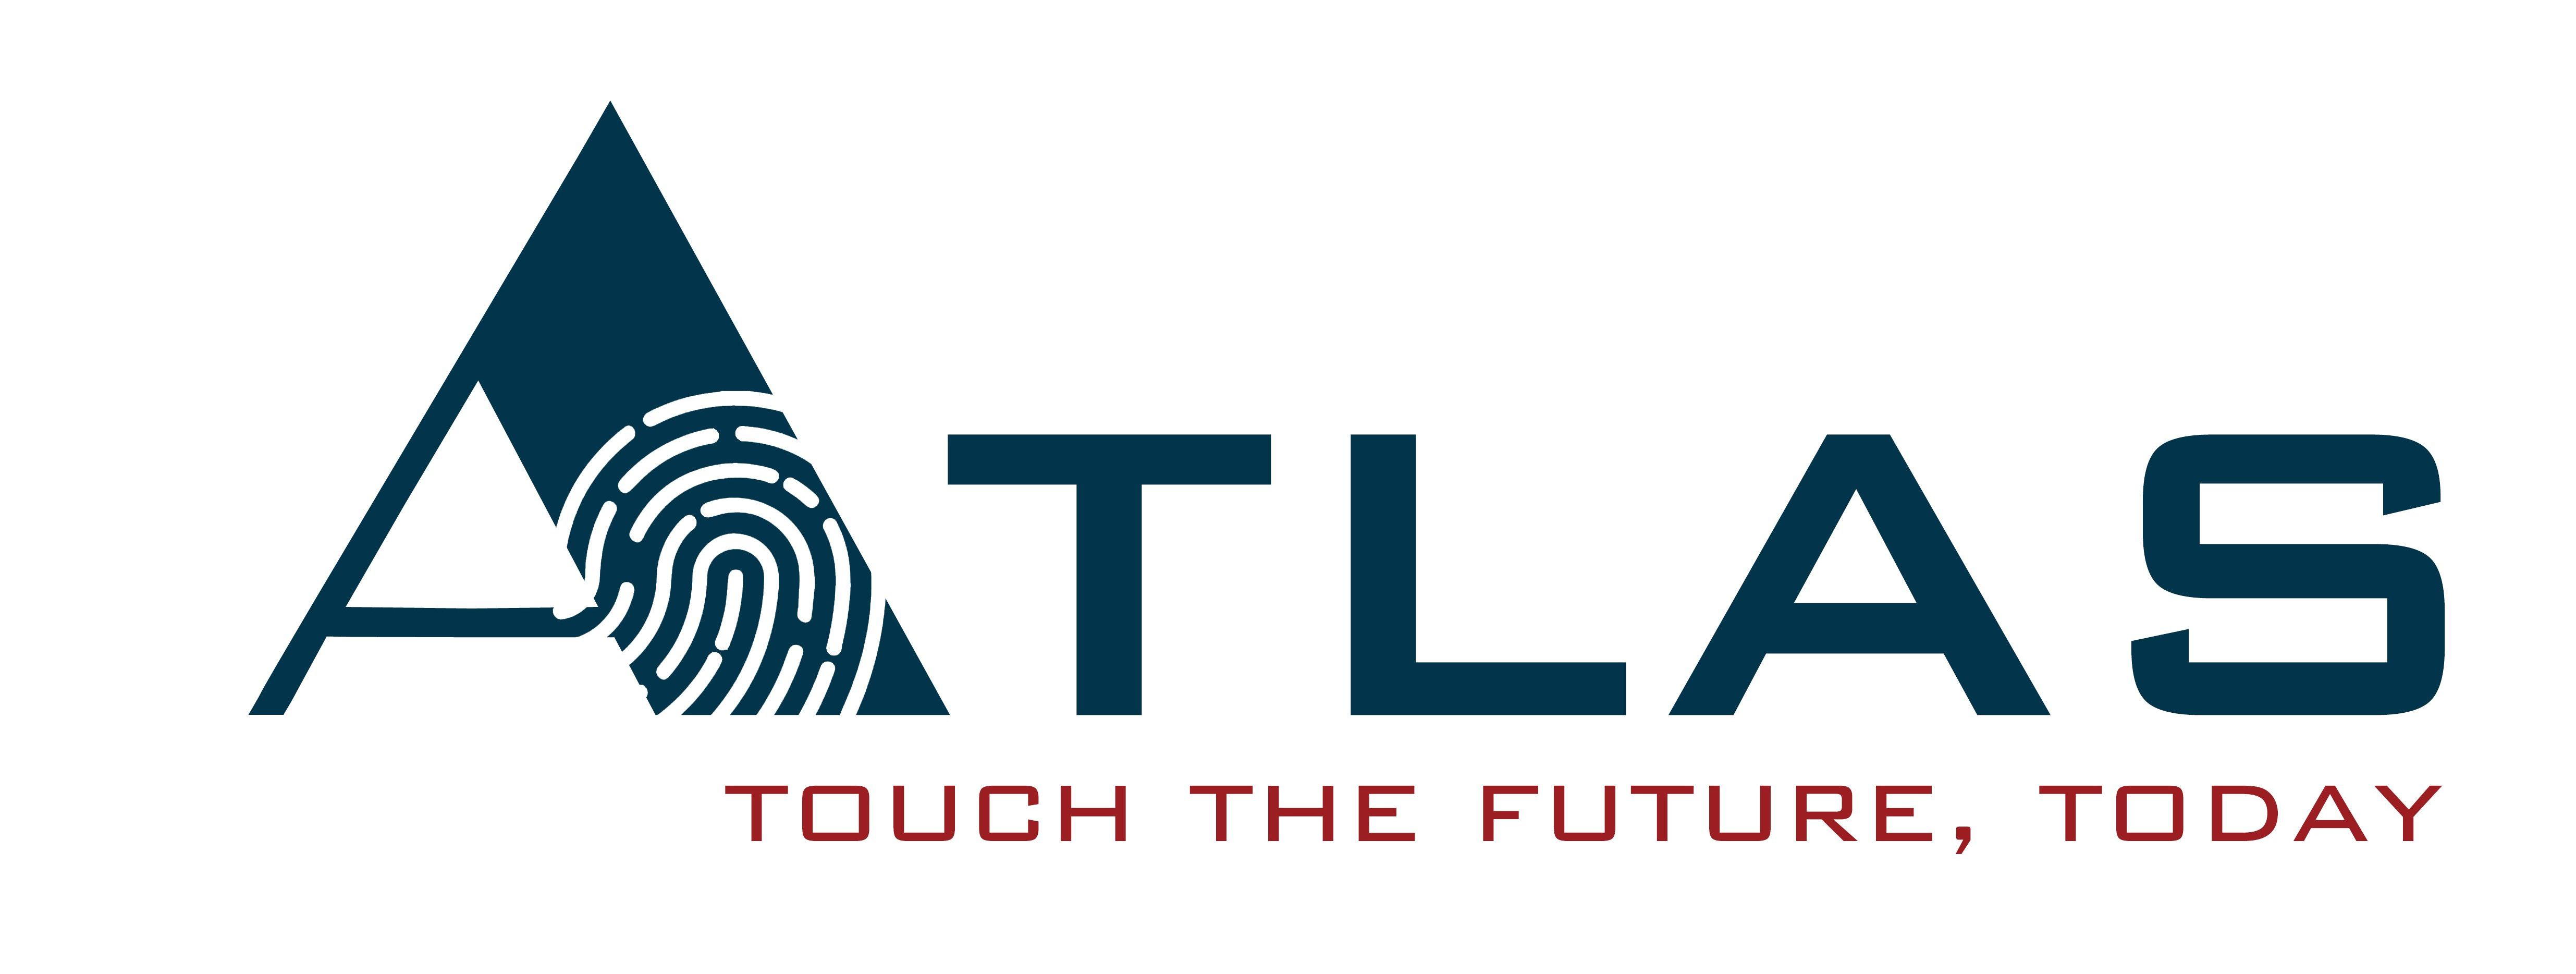 Atlas Technology International Expects to Exceed Previously Announced Third Quarter Revenue Guidance; Company to Announce Third Quarter and Nine Month Results on Monday,